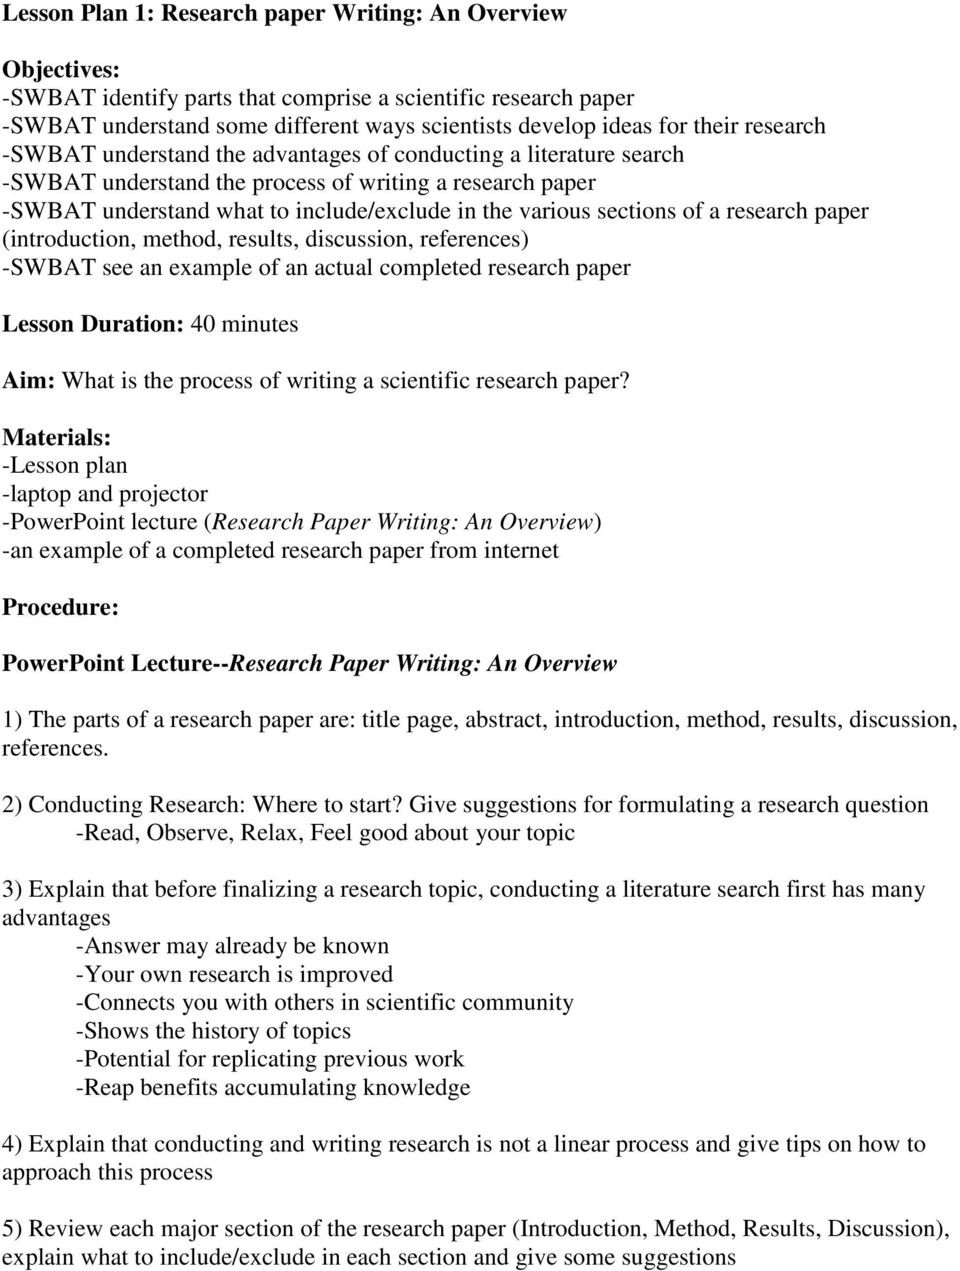 008 Page 1 Research Paper Parts Of Staggering Ppt 5 Chapter A Qualitative 960